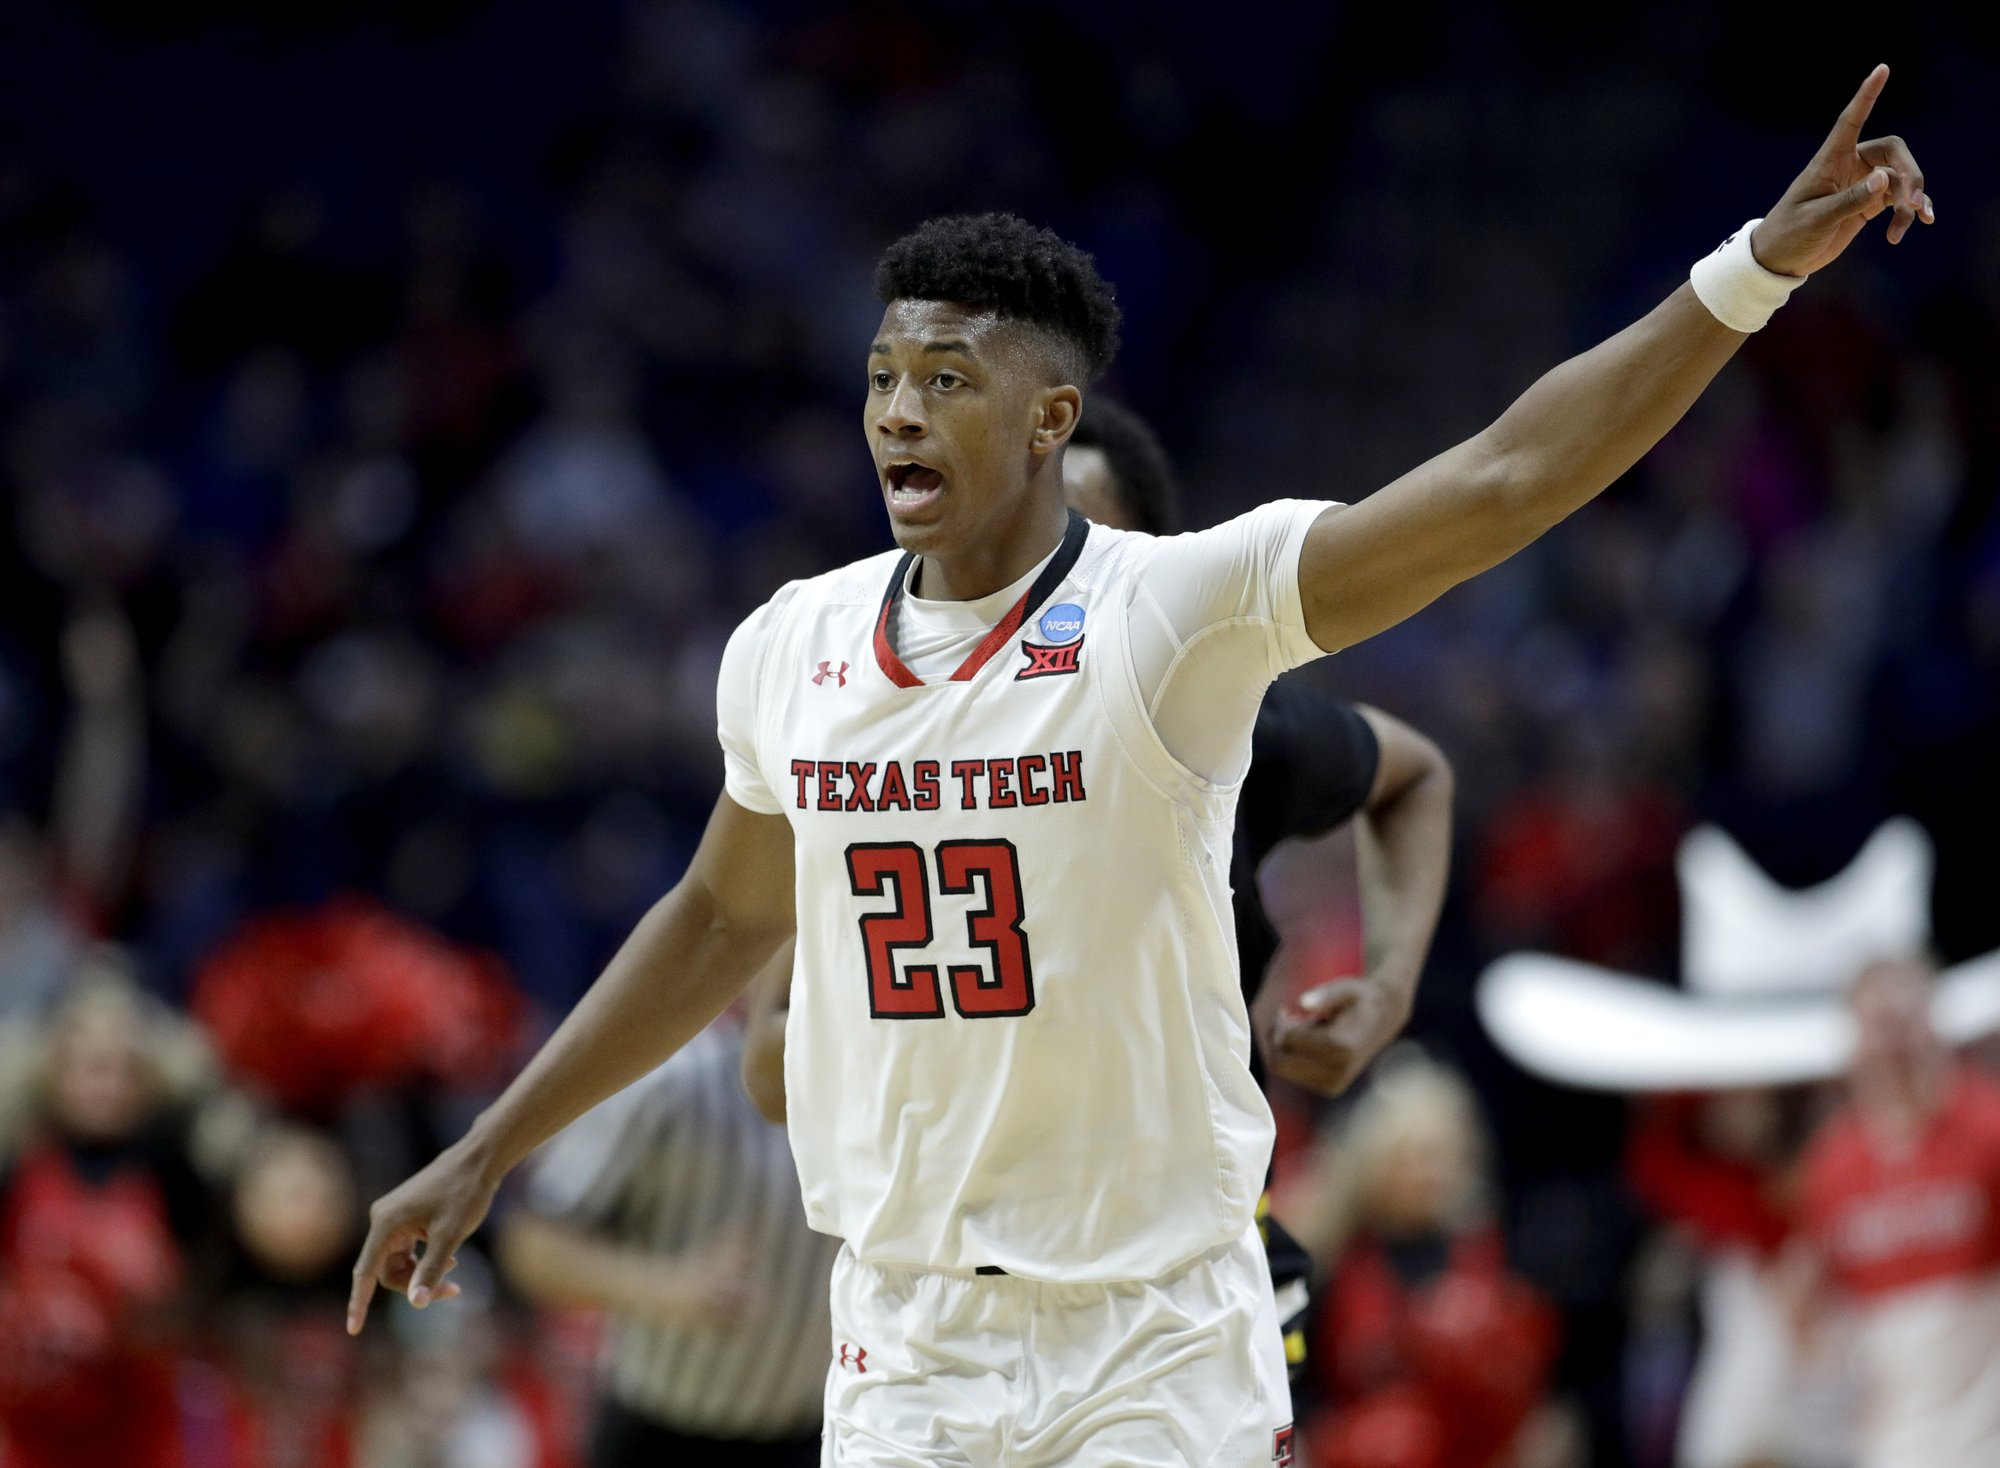 Texas Tech's Jarrett Culver celebrates after a basket during the second half of a first-round men's college basketball game against Northern Kentucky in the NCAA Tournament Friday, March 22, 2019, in Tulsa, Okla. Texas Tech won 72-57. (AP Photo/Charlie Riedel)